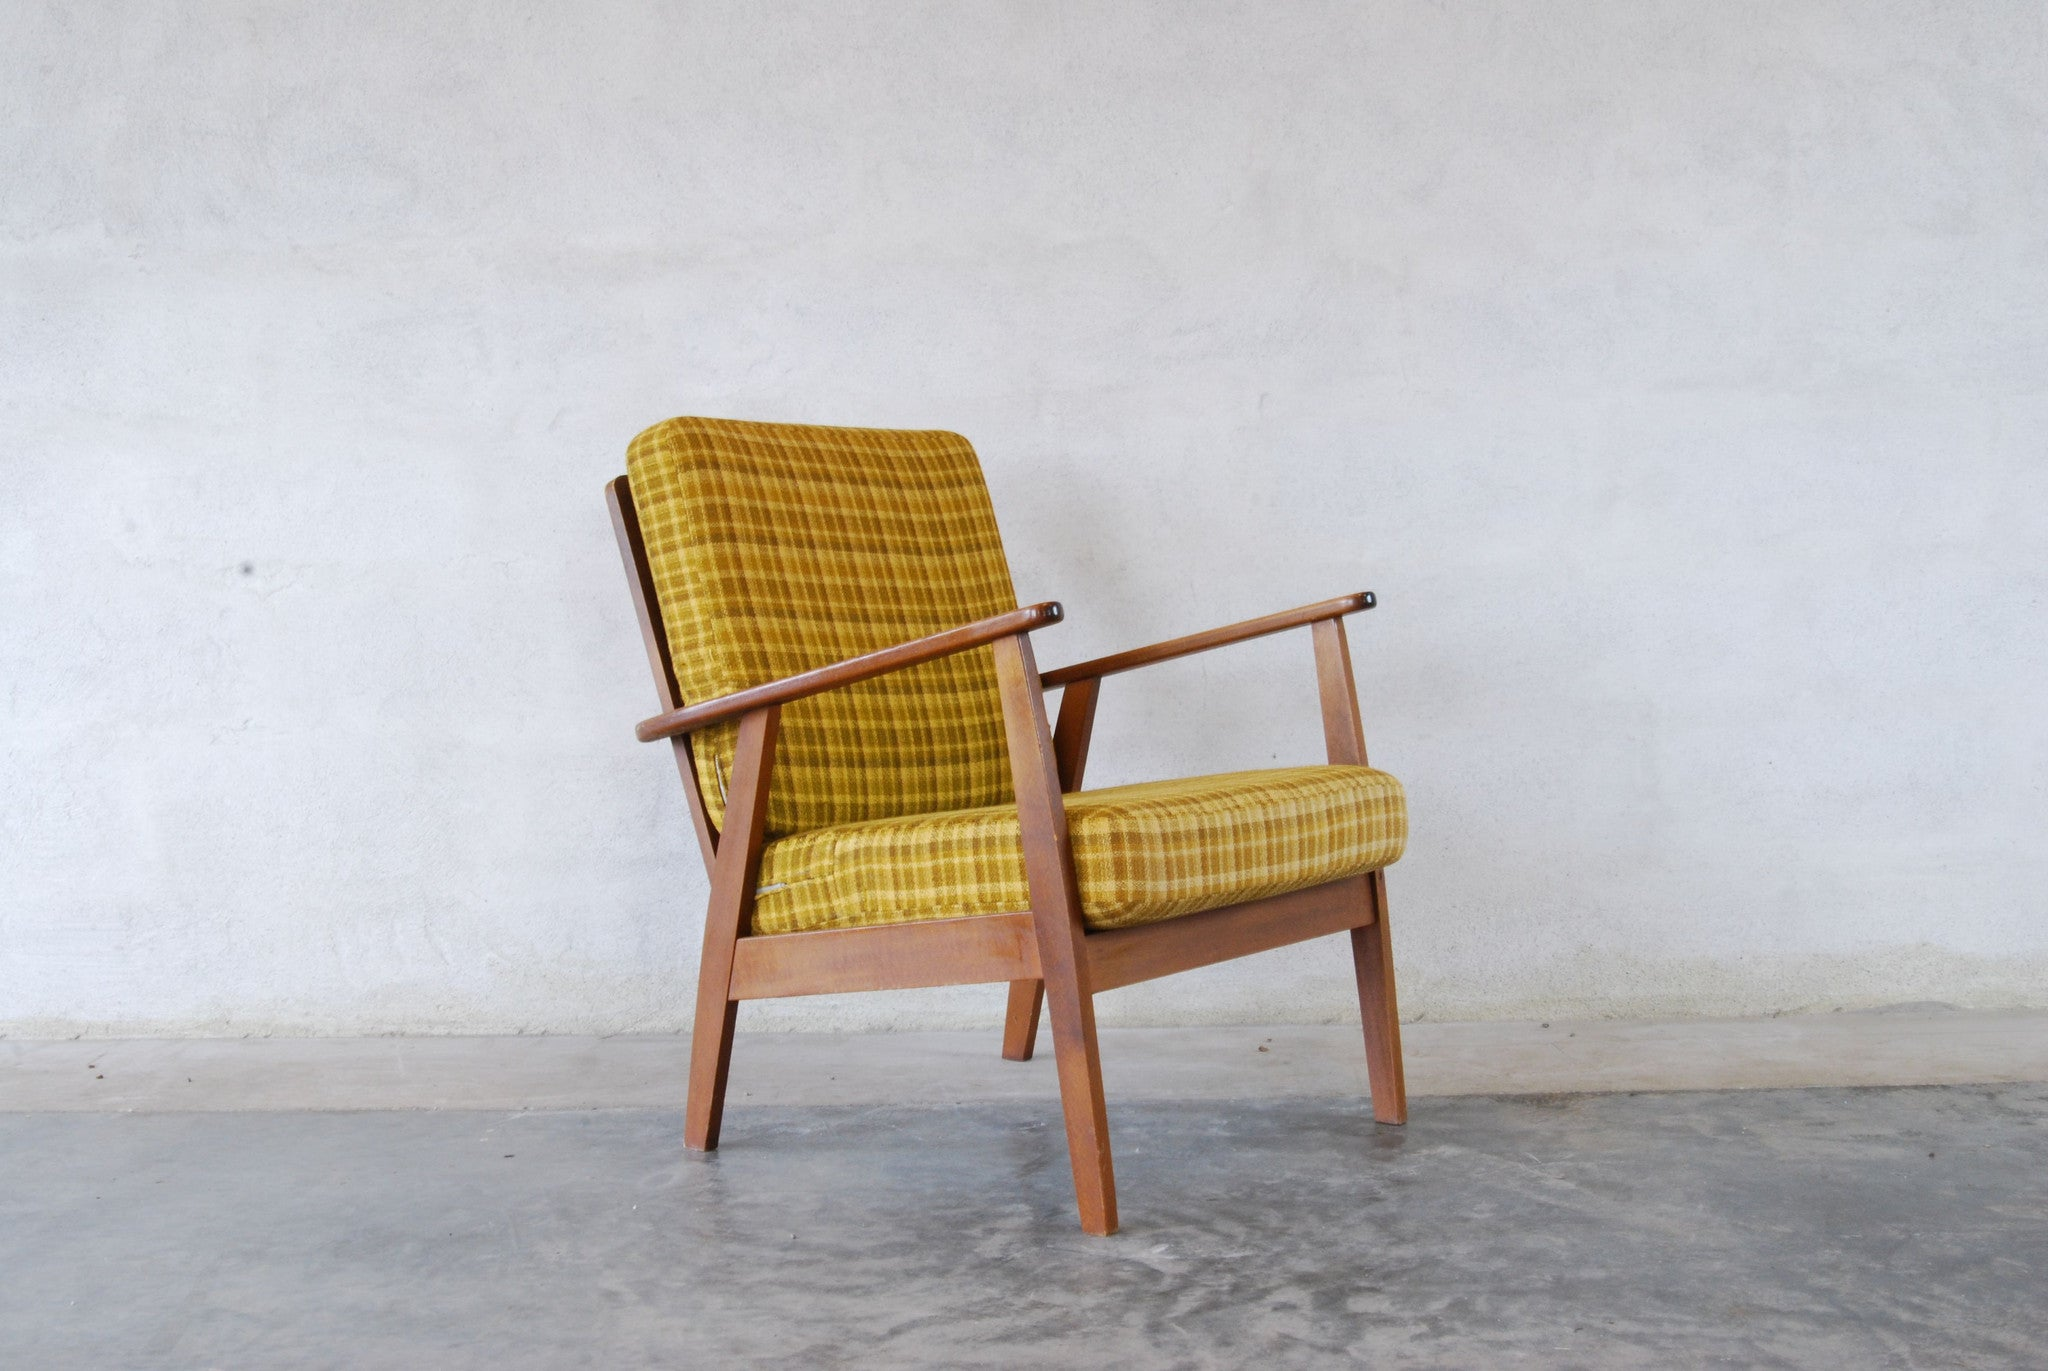 Chase & Sorensen Teak/beech framed lounge chair no. 2